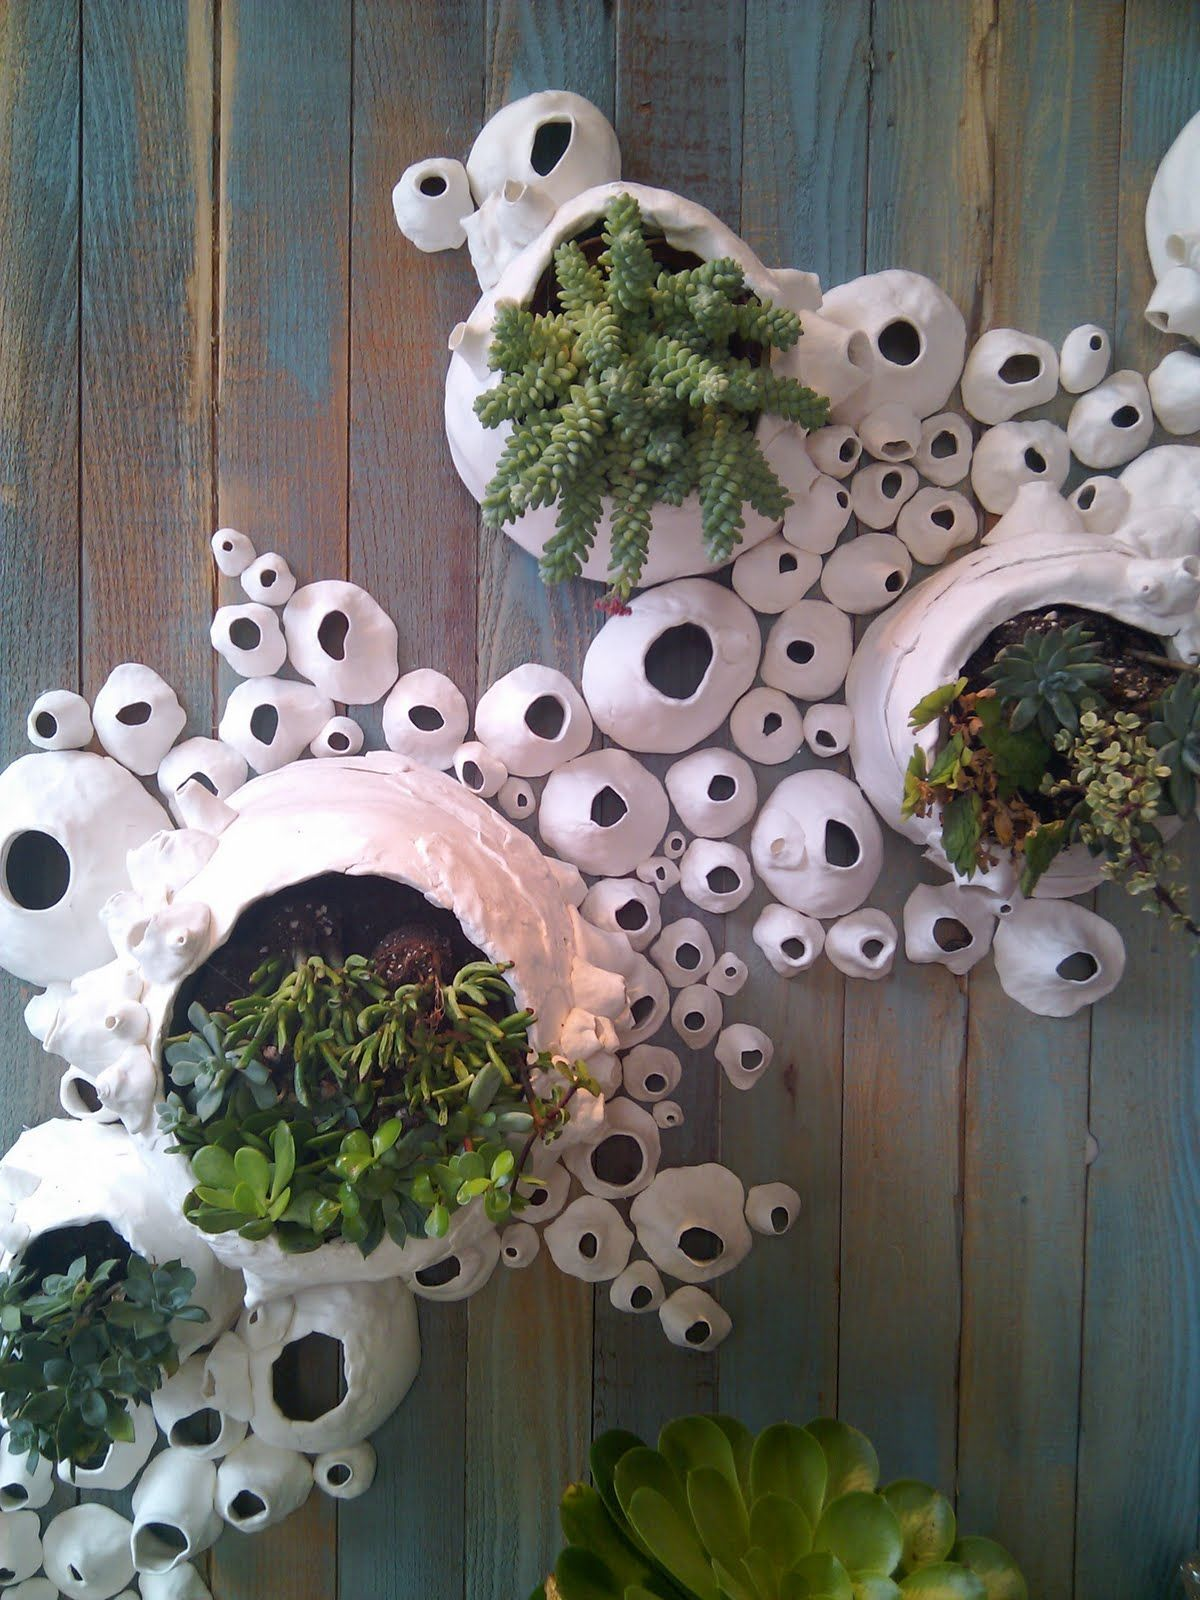 Anthropology Display Of Succulents In Handmade Barnacle